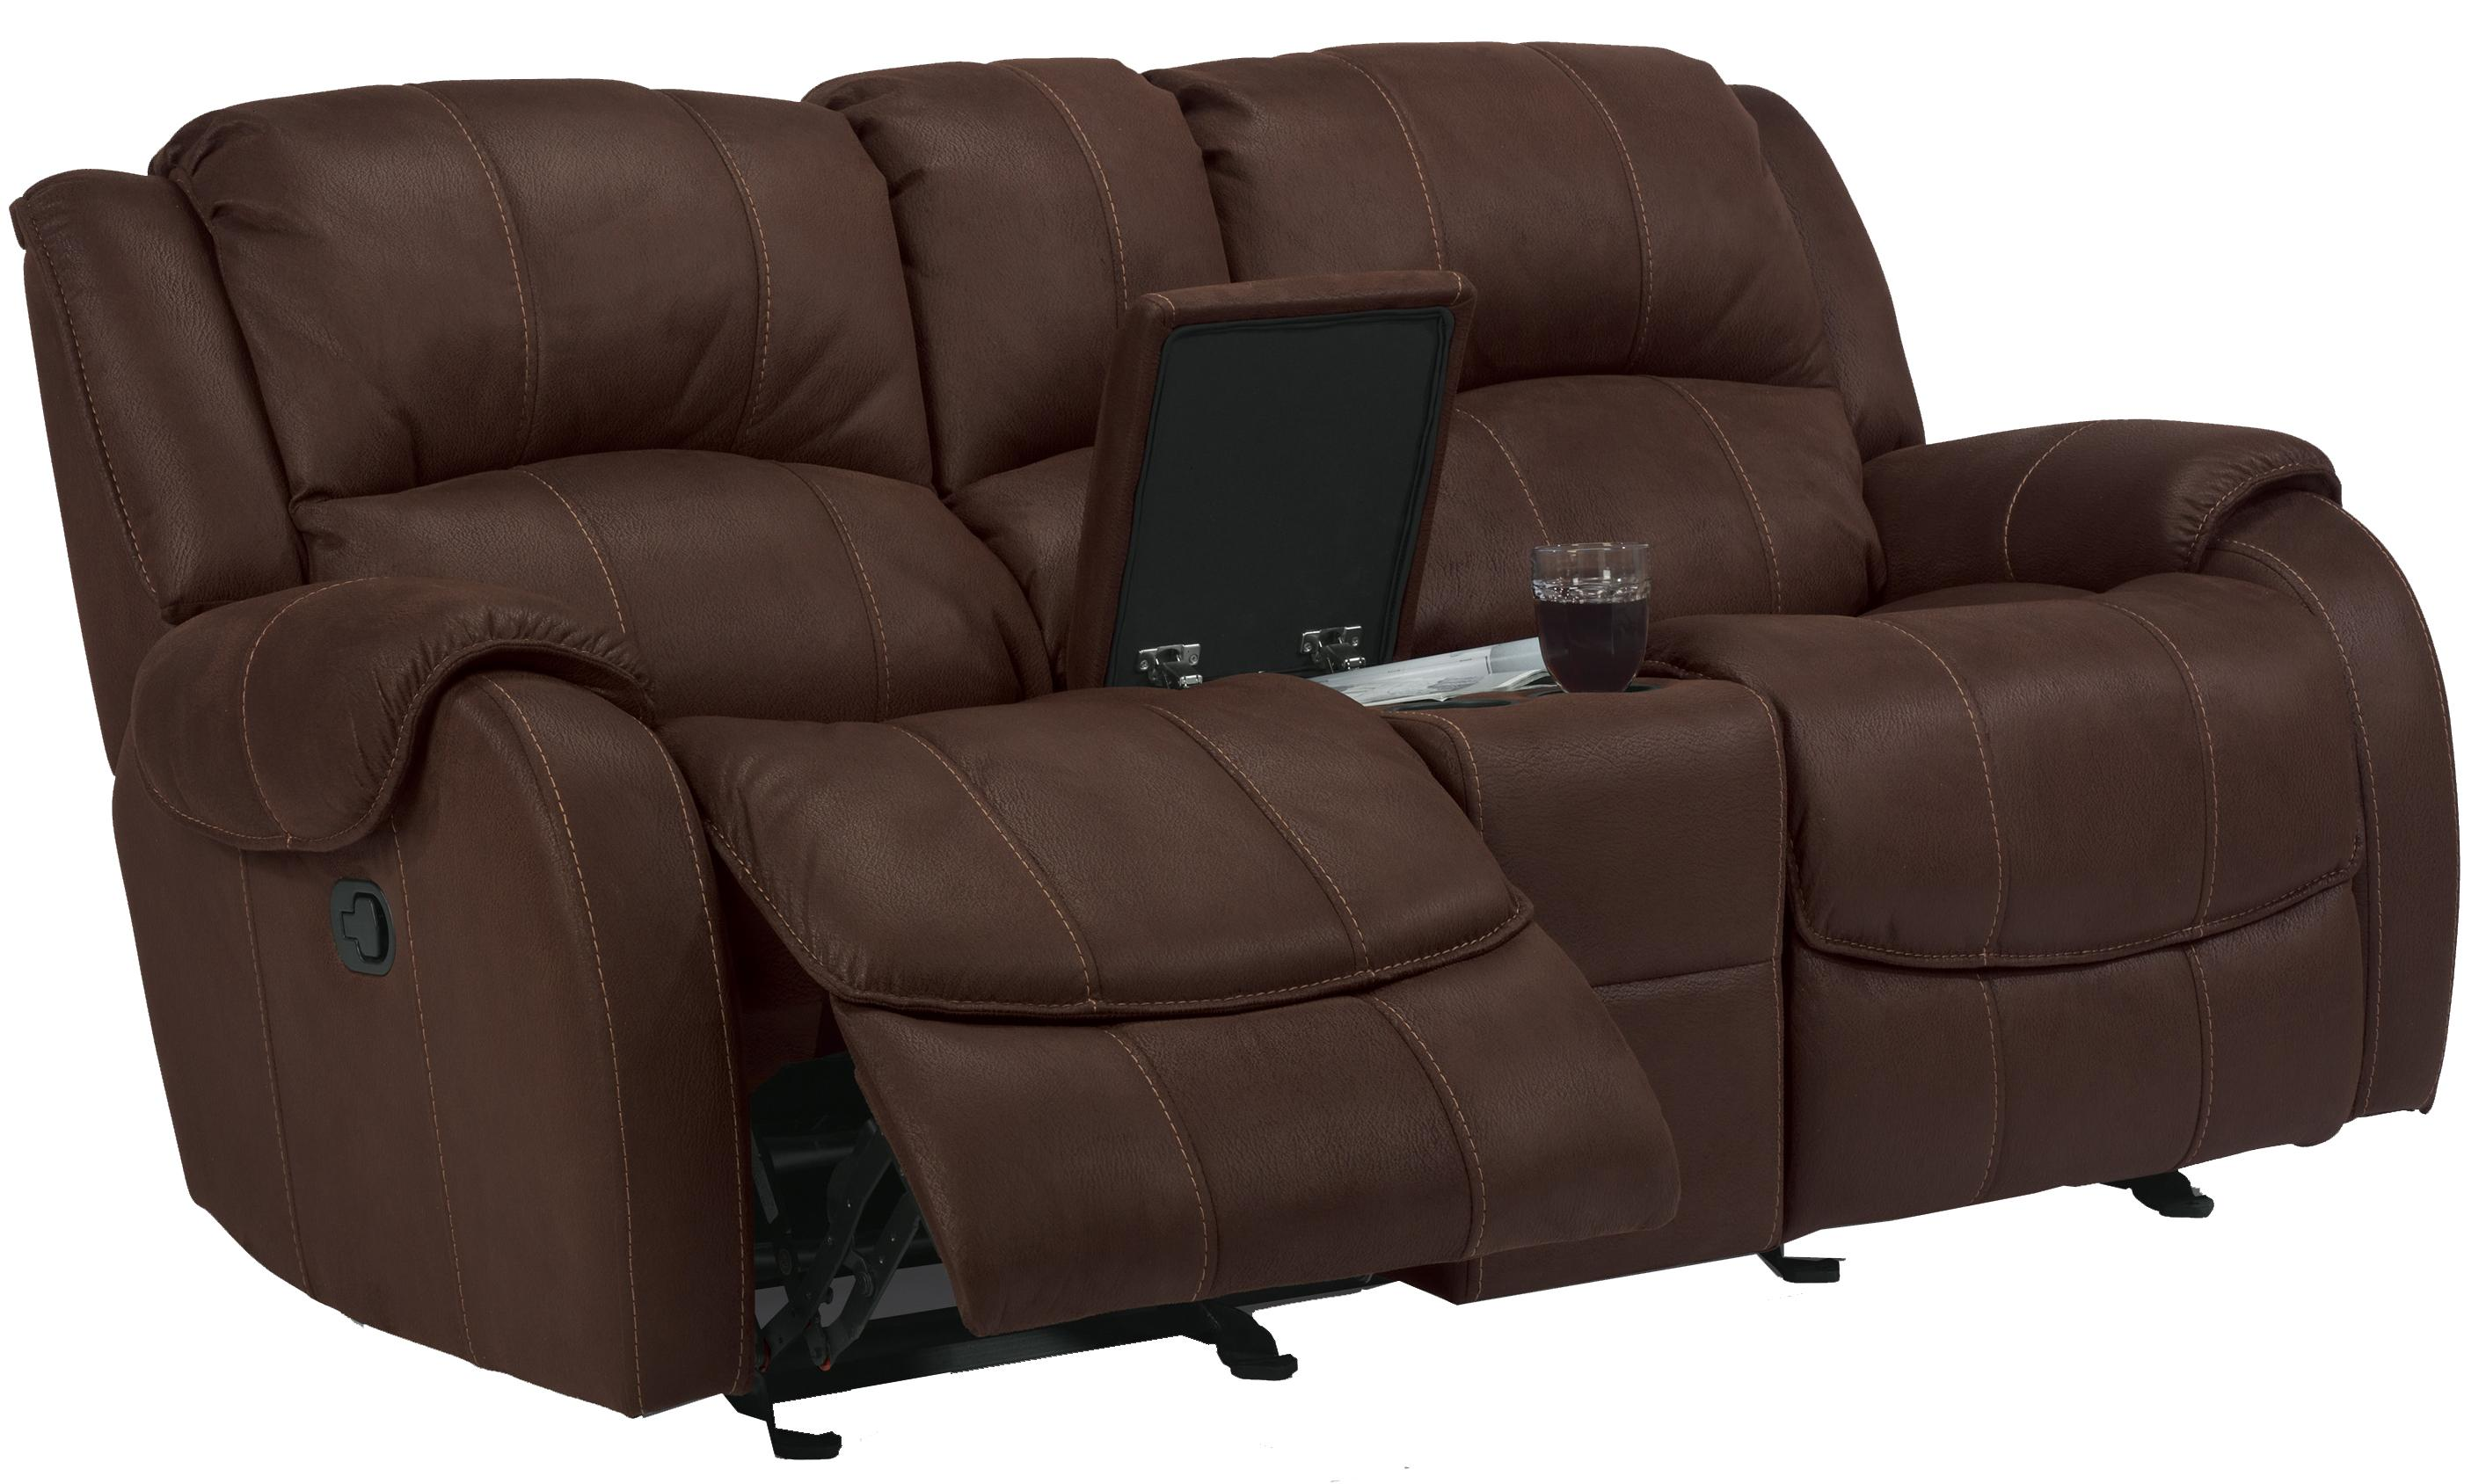 Exceptionnel Flexsteel Latitudes  Pure Comfort Dual Gliding Reclining Love Seat With  Console   AHFA   Reclining Love Seat Dealer Locator